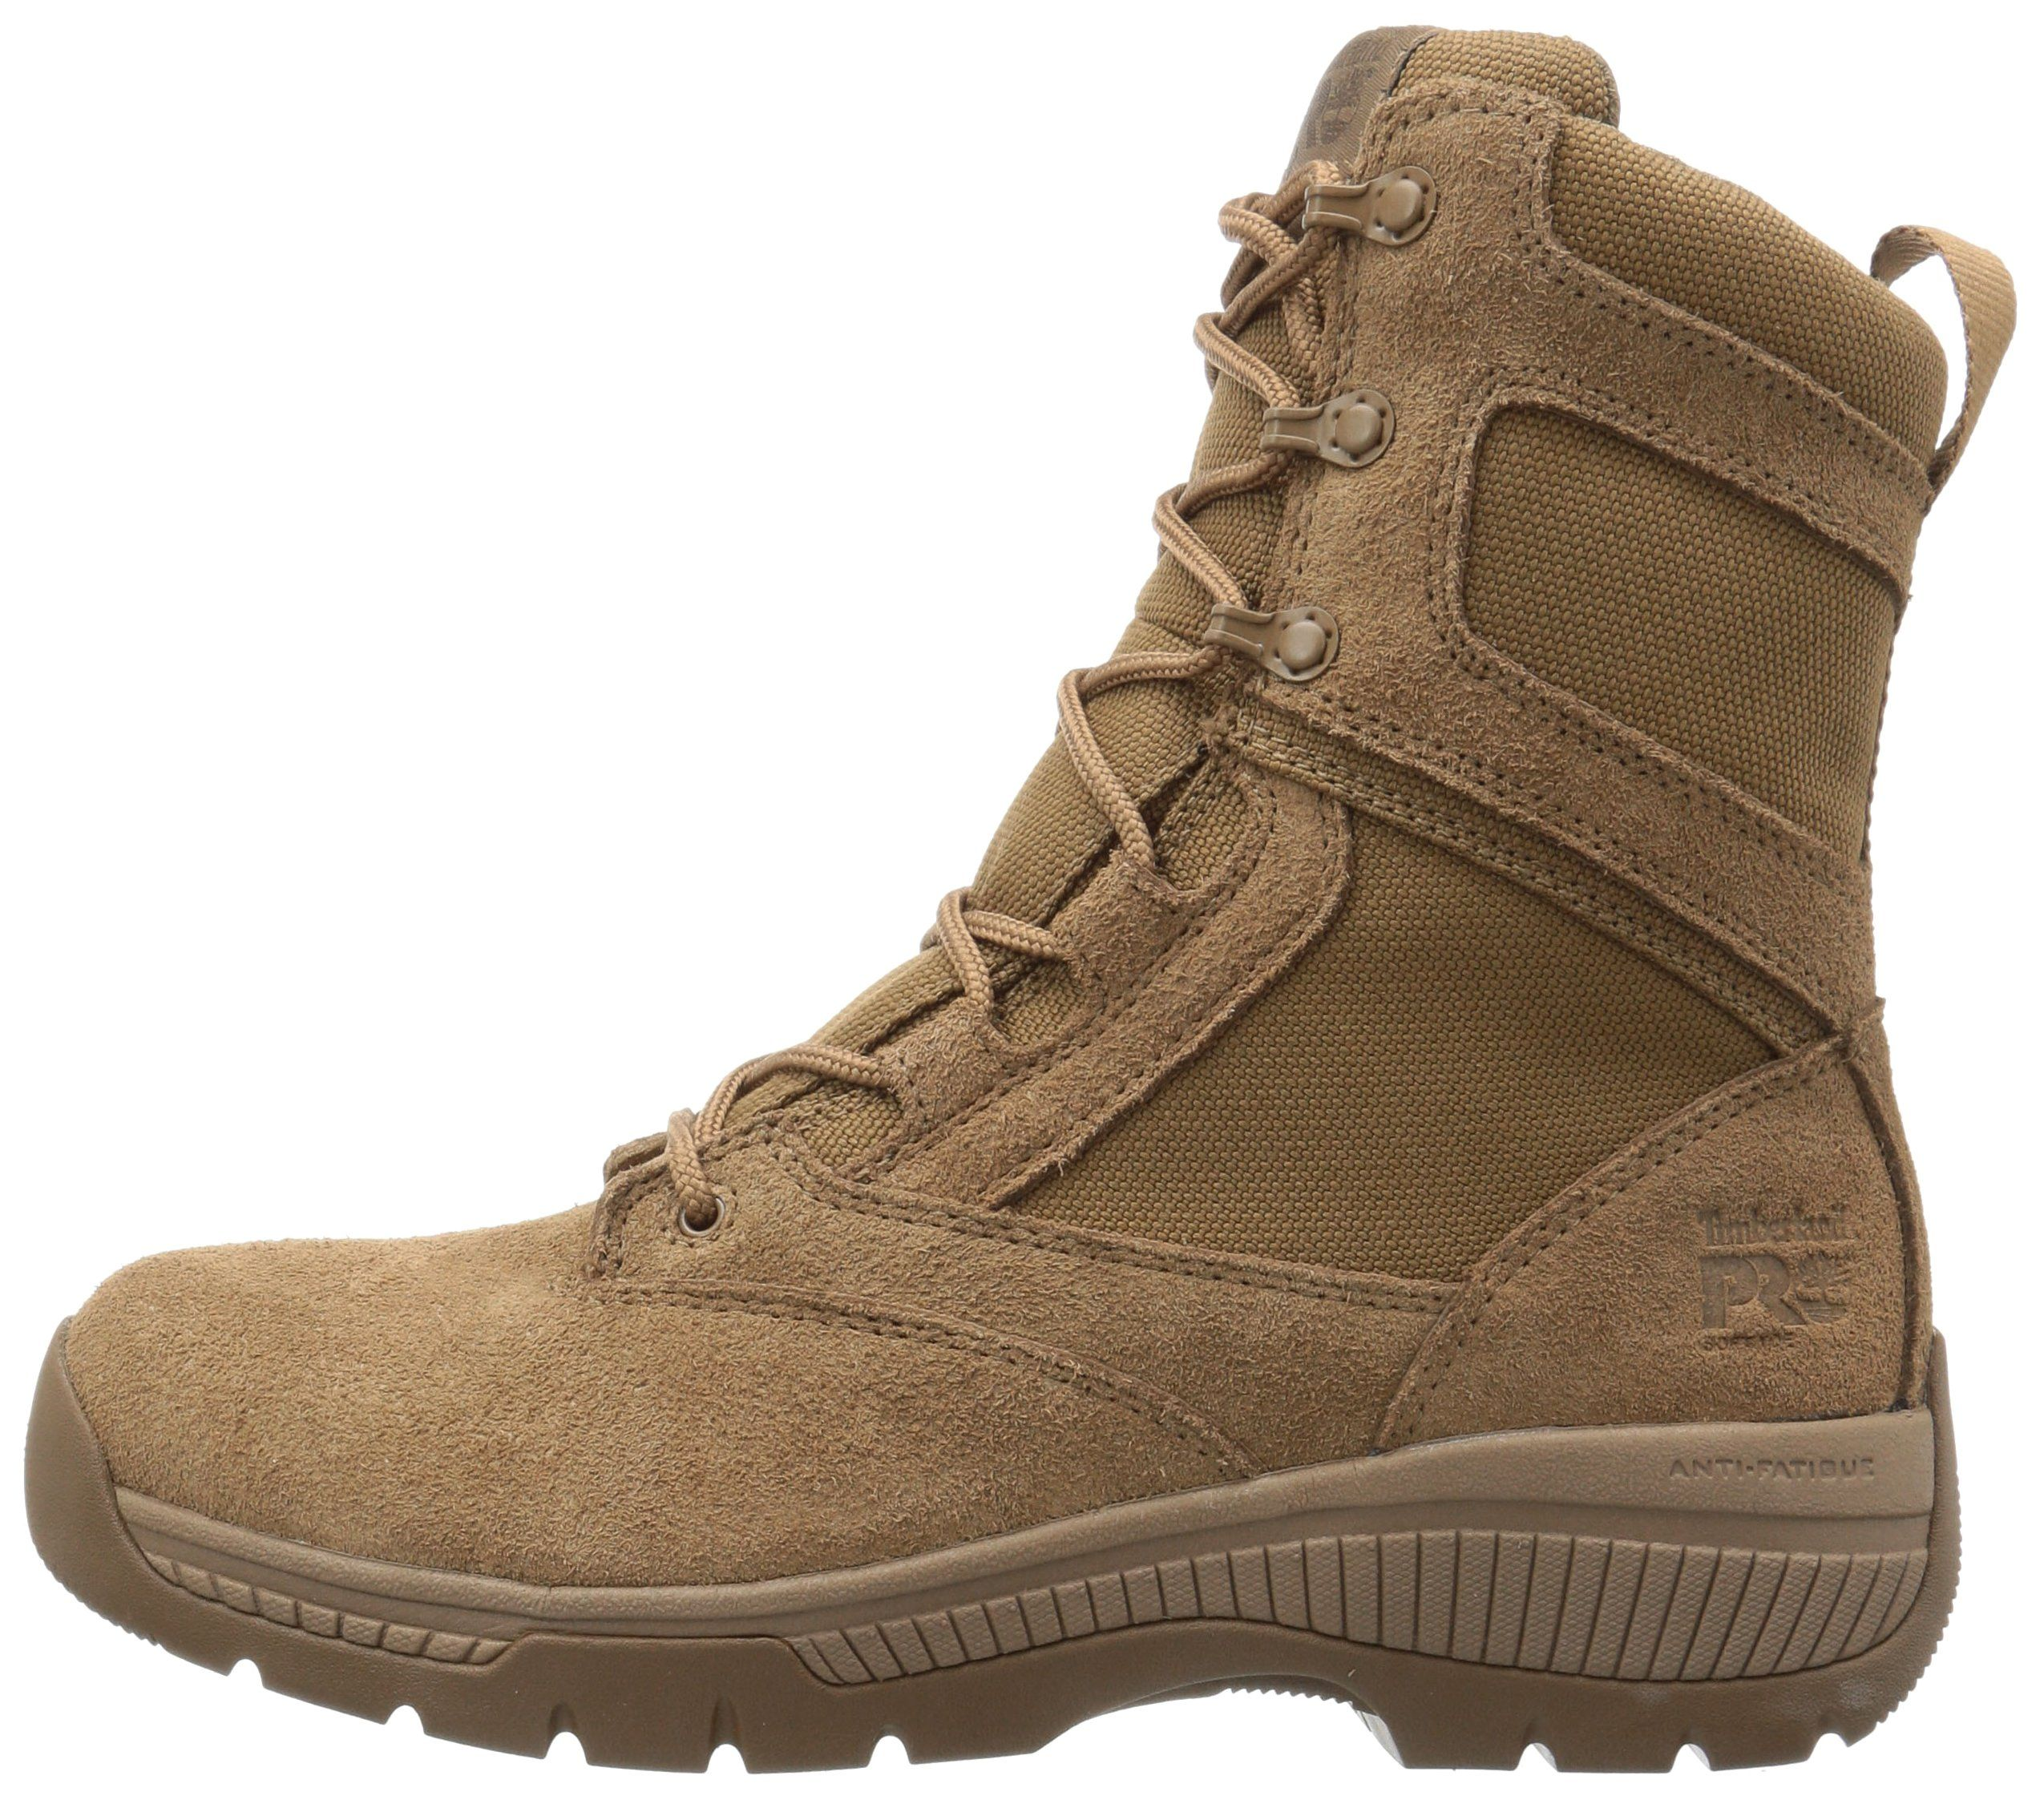 e890e6244 Timberland PRO Mens Valor Duty 8 Soft Toe Military and Tactical Boot Coyote  11 M US * See this great product. (This is an affiliate link) # ...